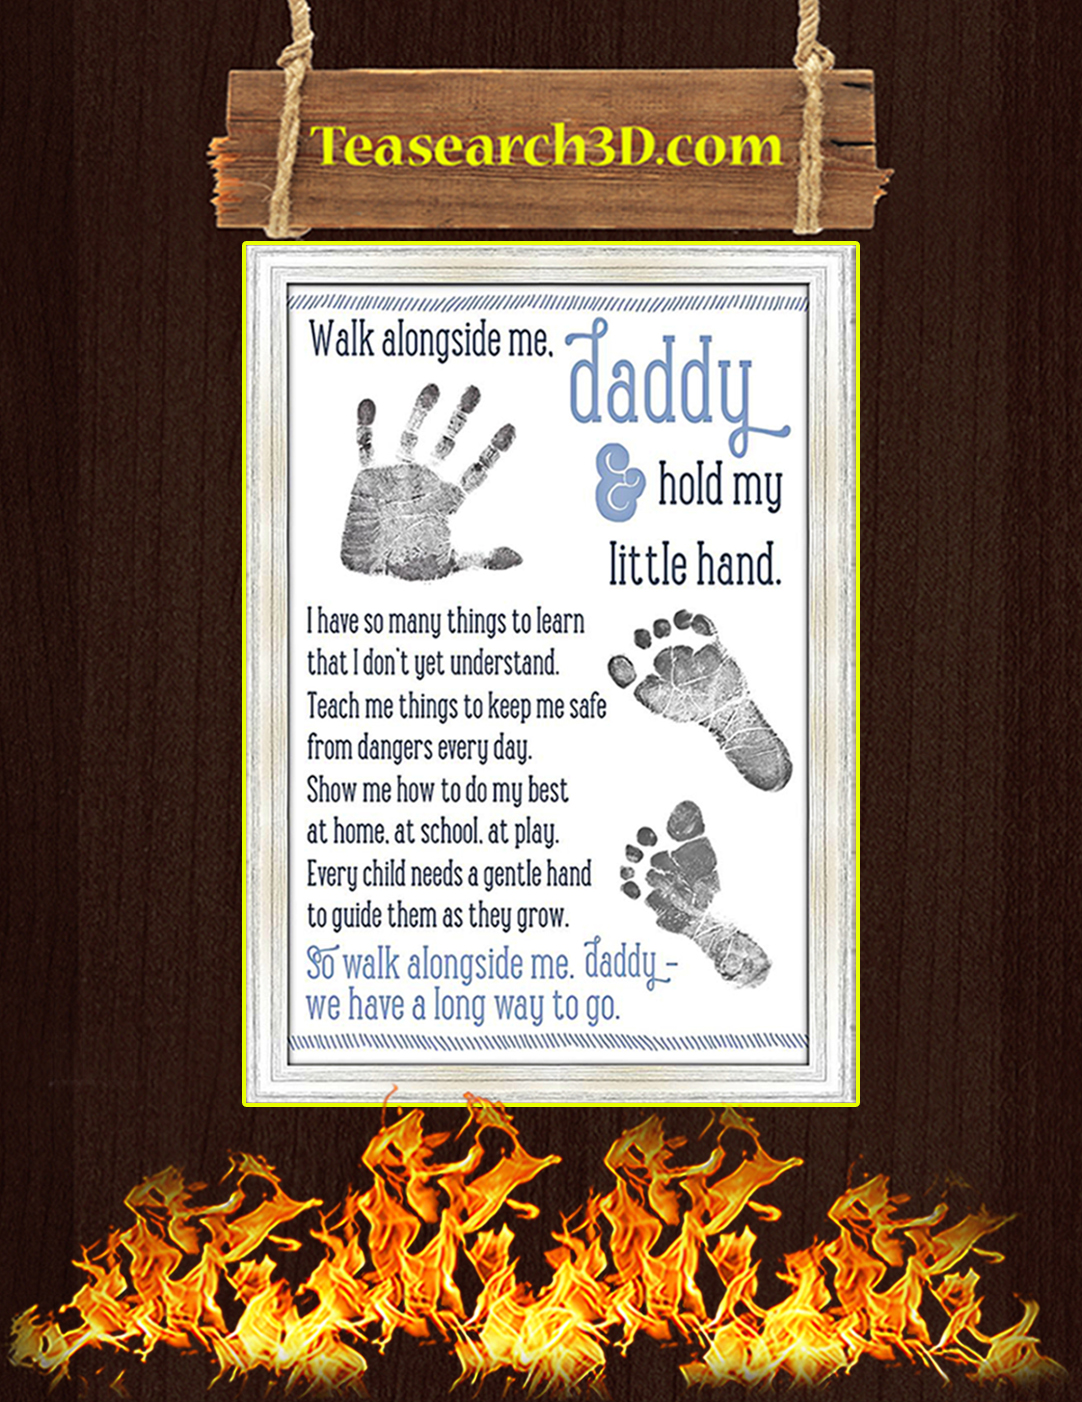 Walk alongside me daddy hold my little hand poster A2